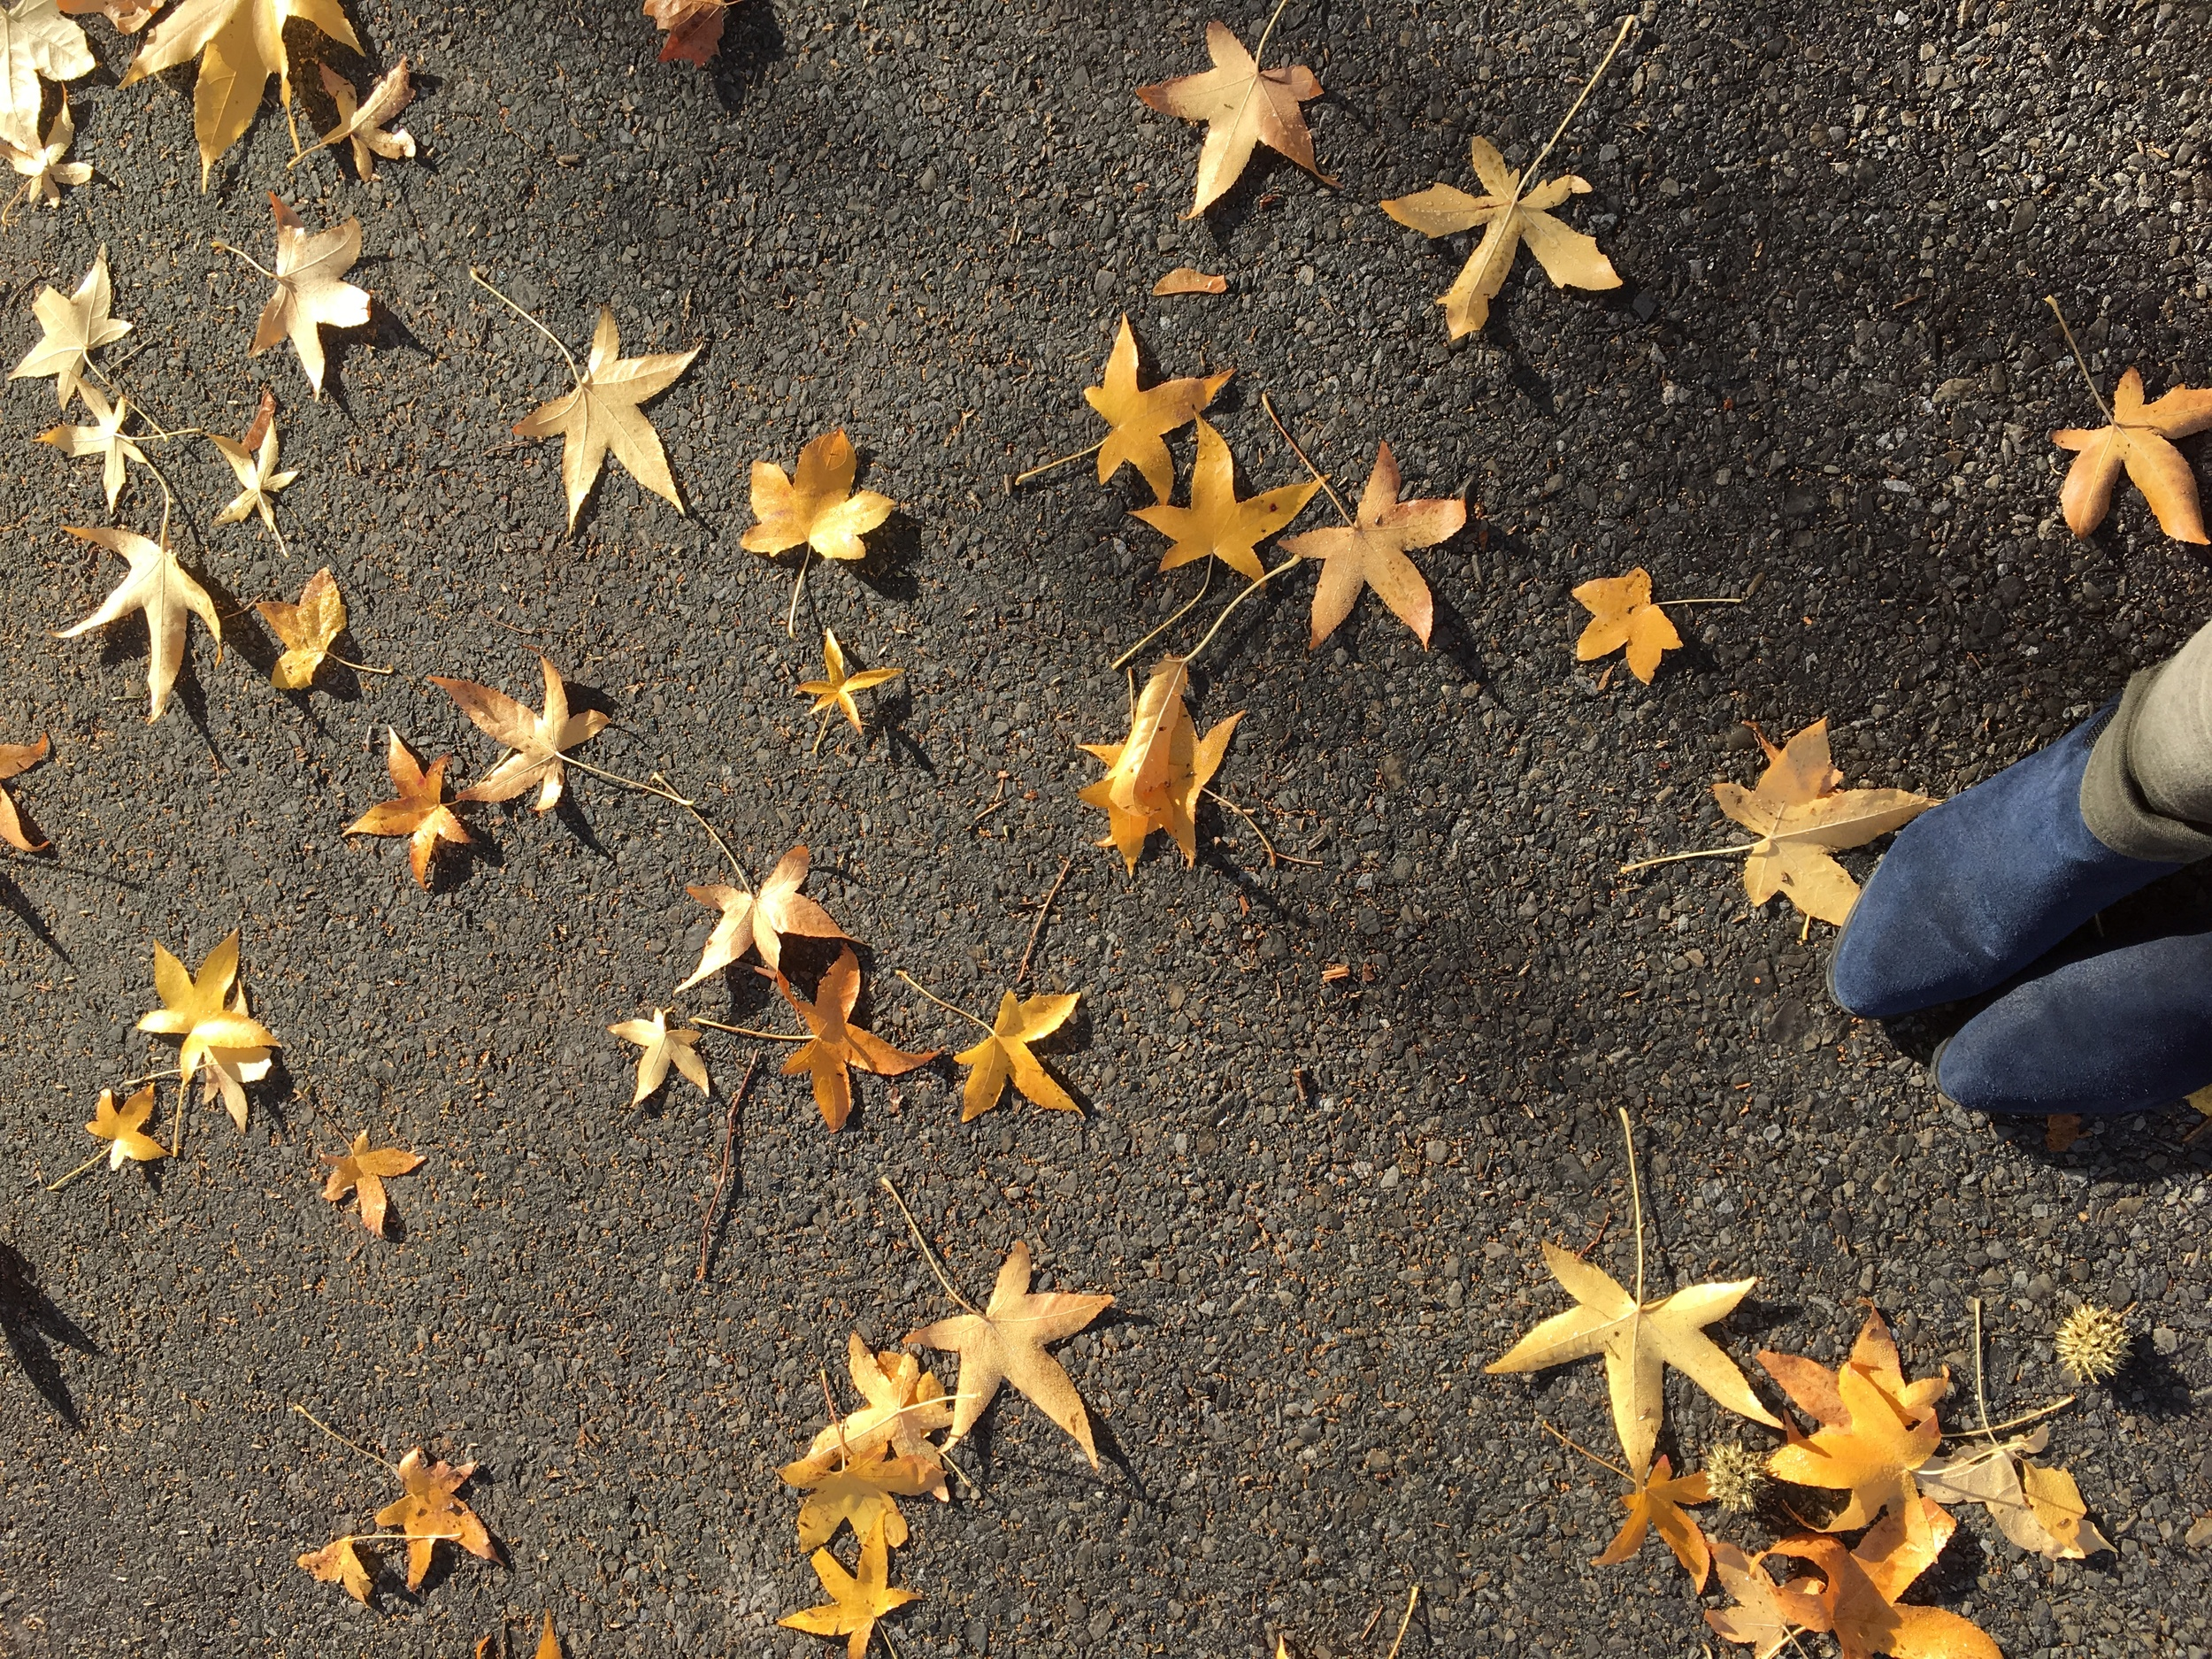 i fell in love with these leaves today because i am now the sort of person who falls in love with leaves.